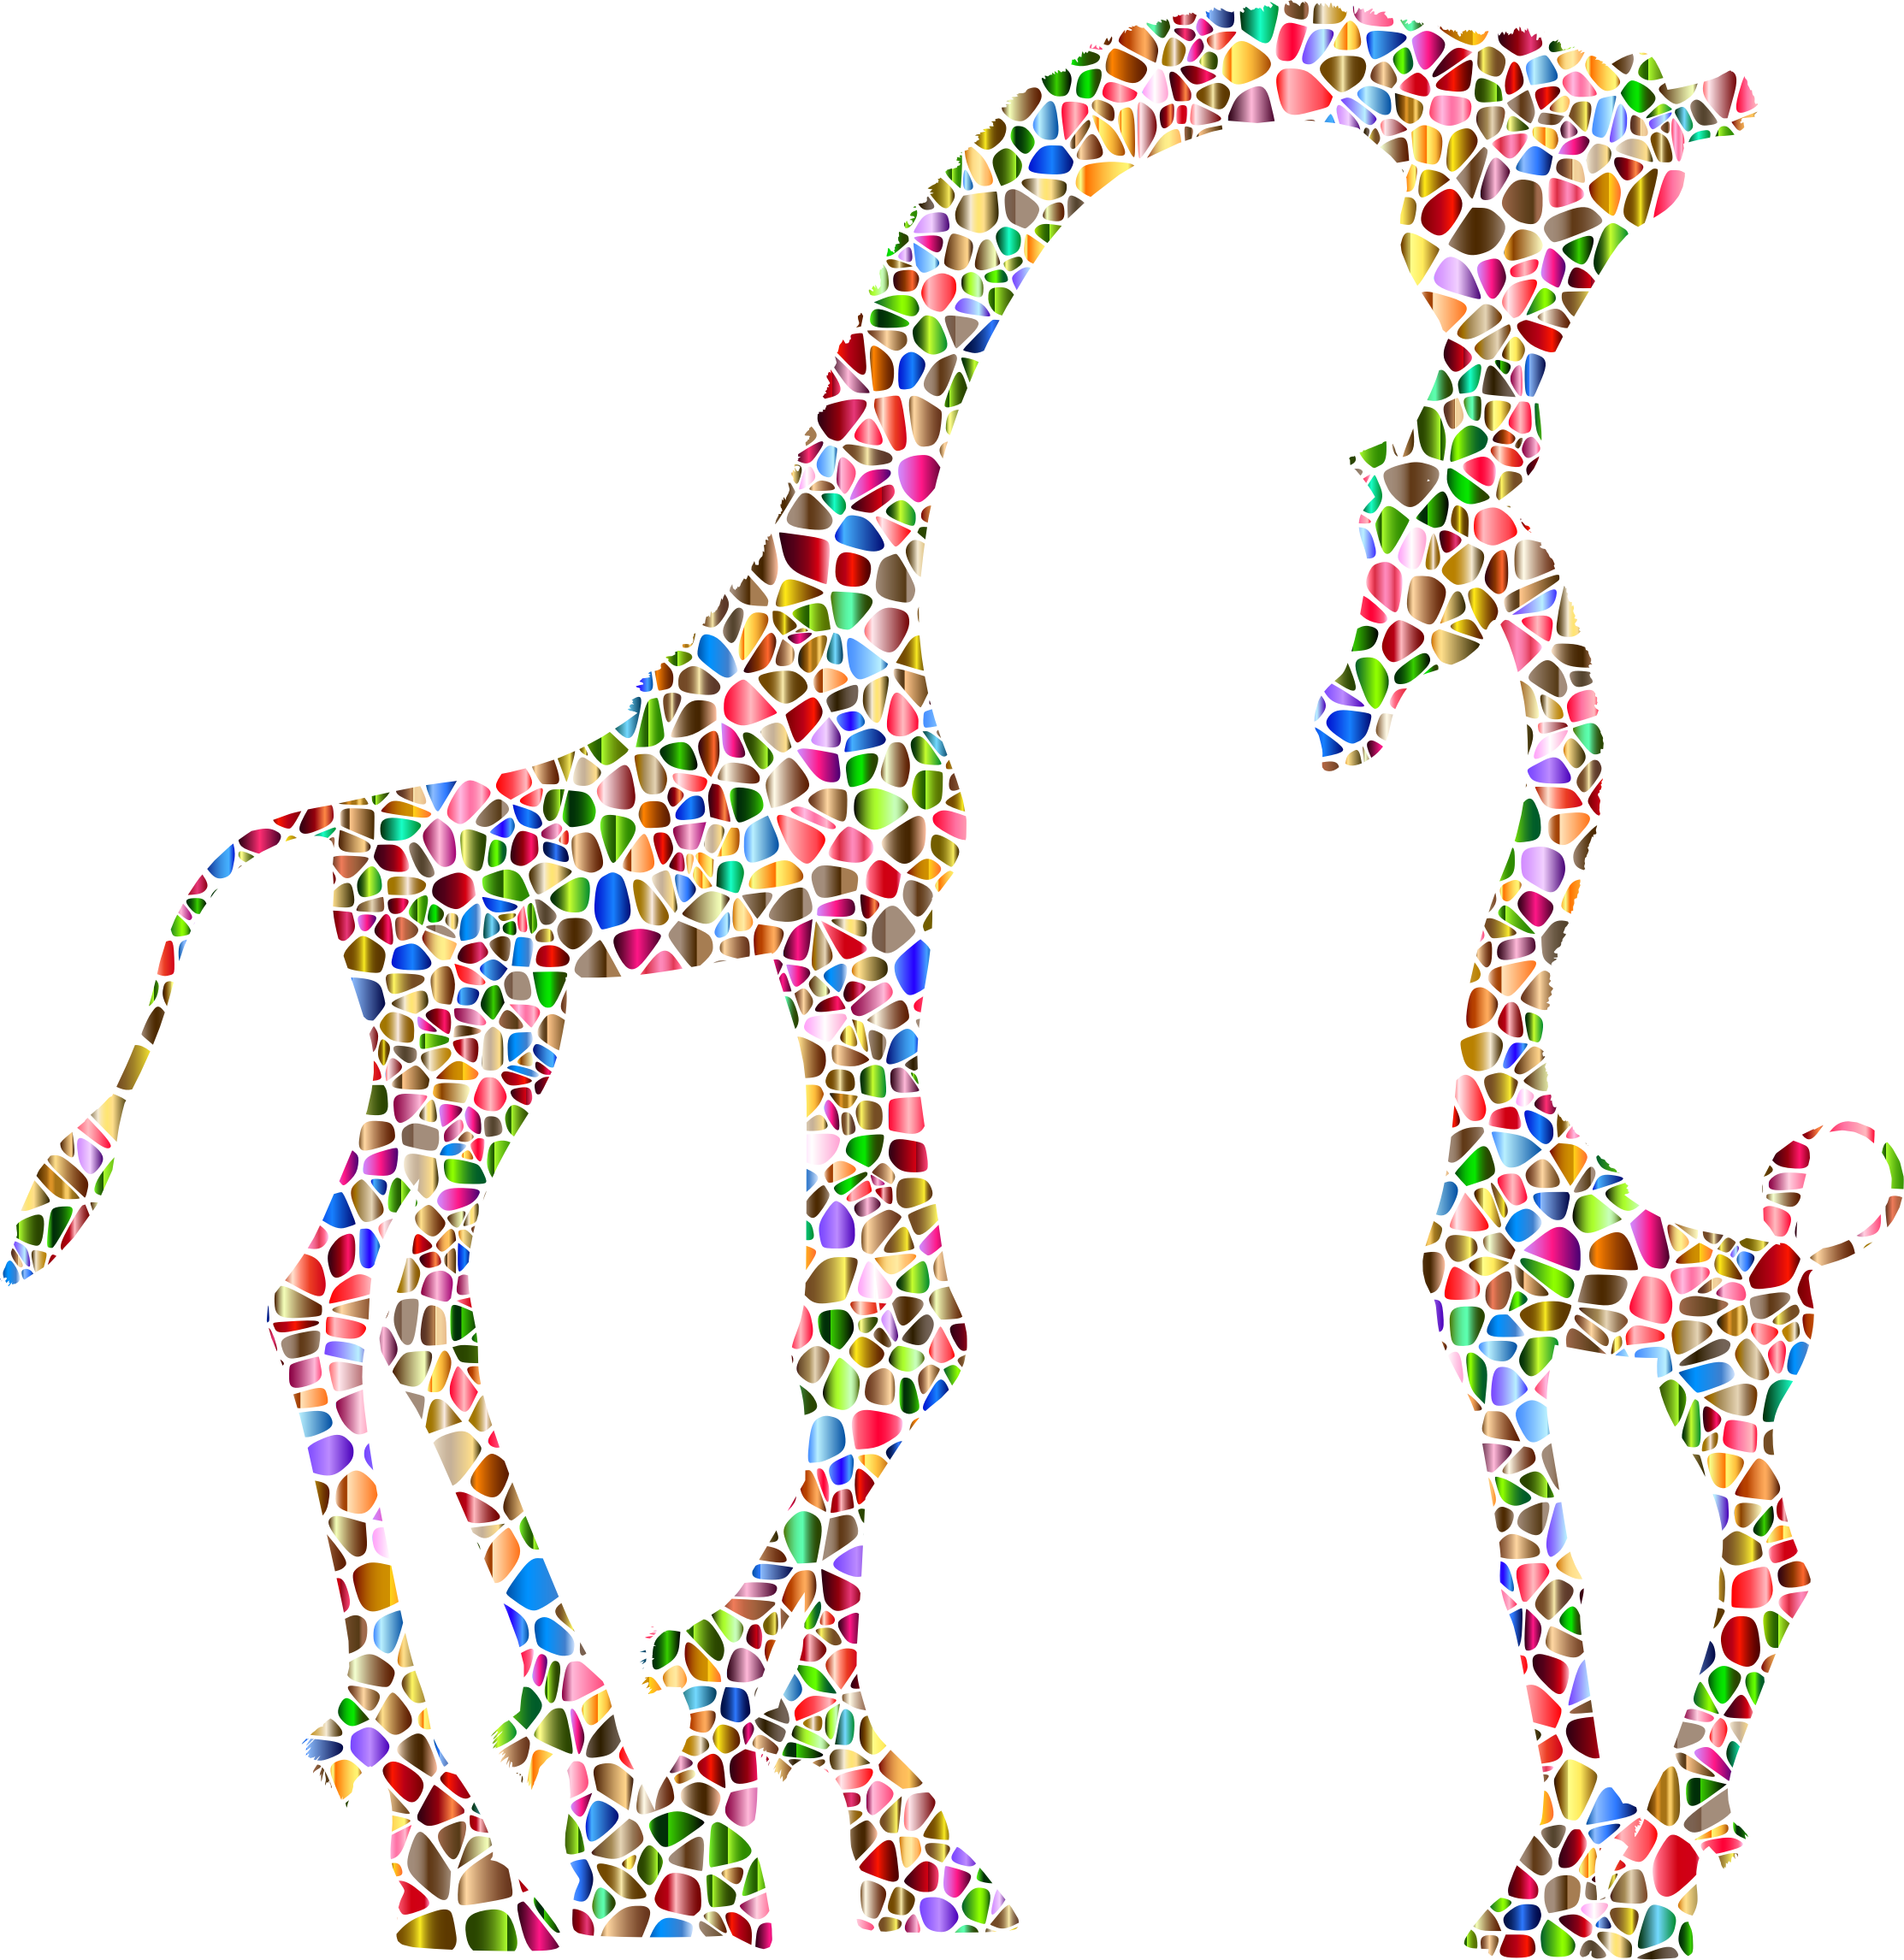 Polychromatic Tiled Mother And Child Giraffe Silhouette Variation 2 No Background by GDJ